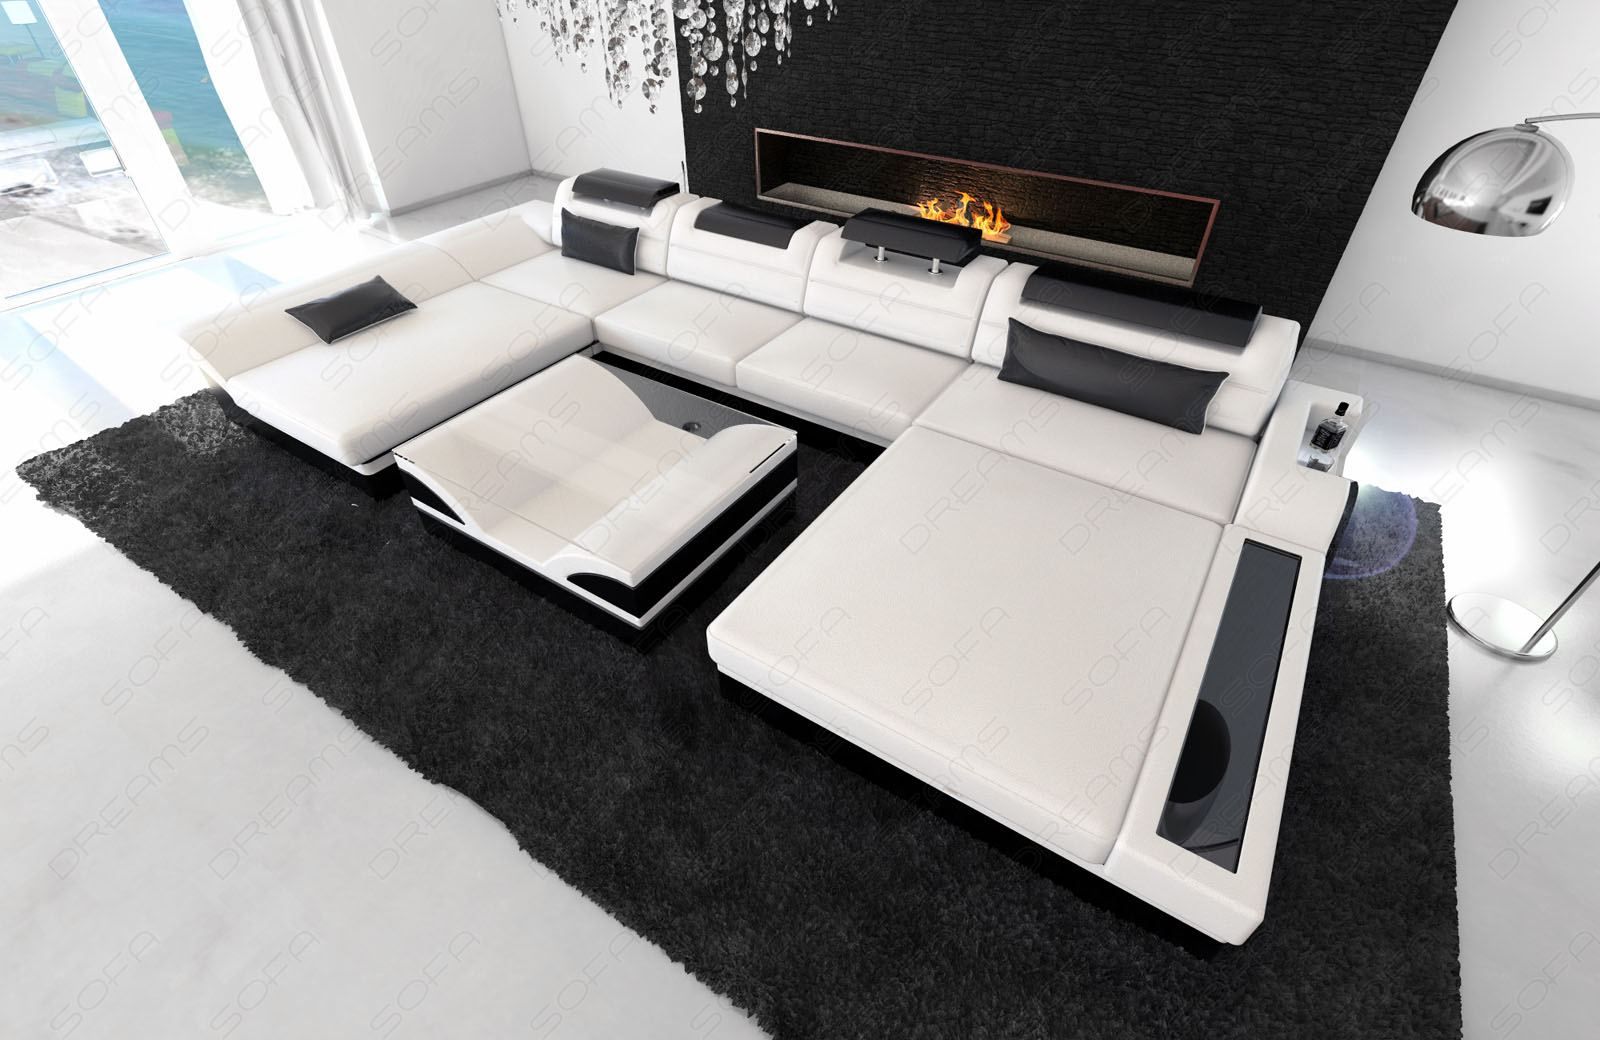 xxl sofa u form design sectional sofa matera xxl with led. Black Bedroom Furniture Sets. Home Design Ideas